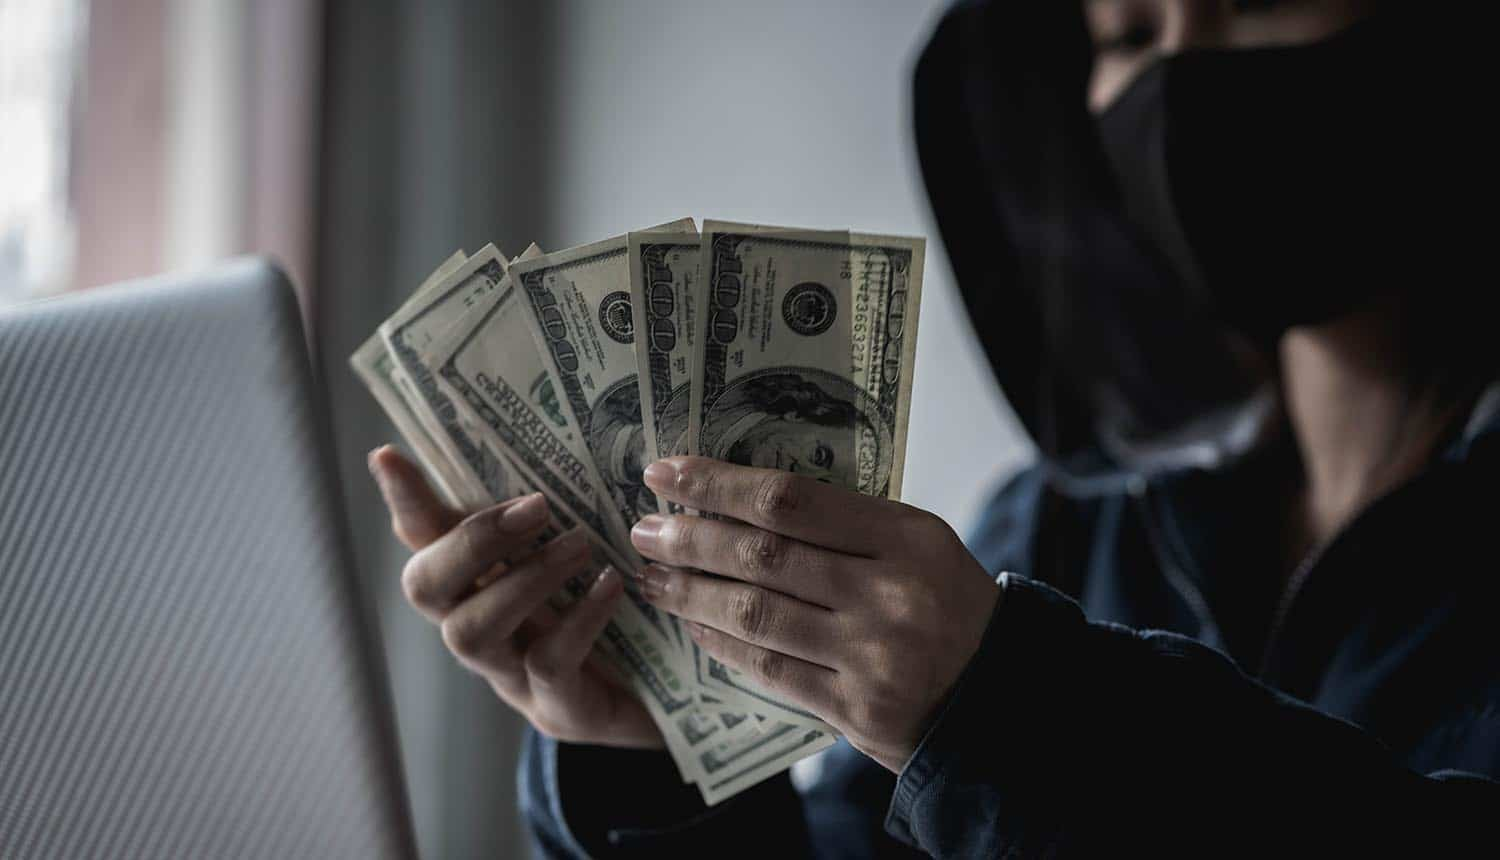 Hacker holding money after successful attack showing ban of ransomware payments